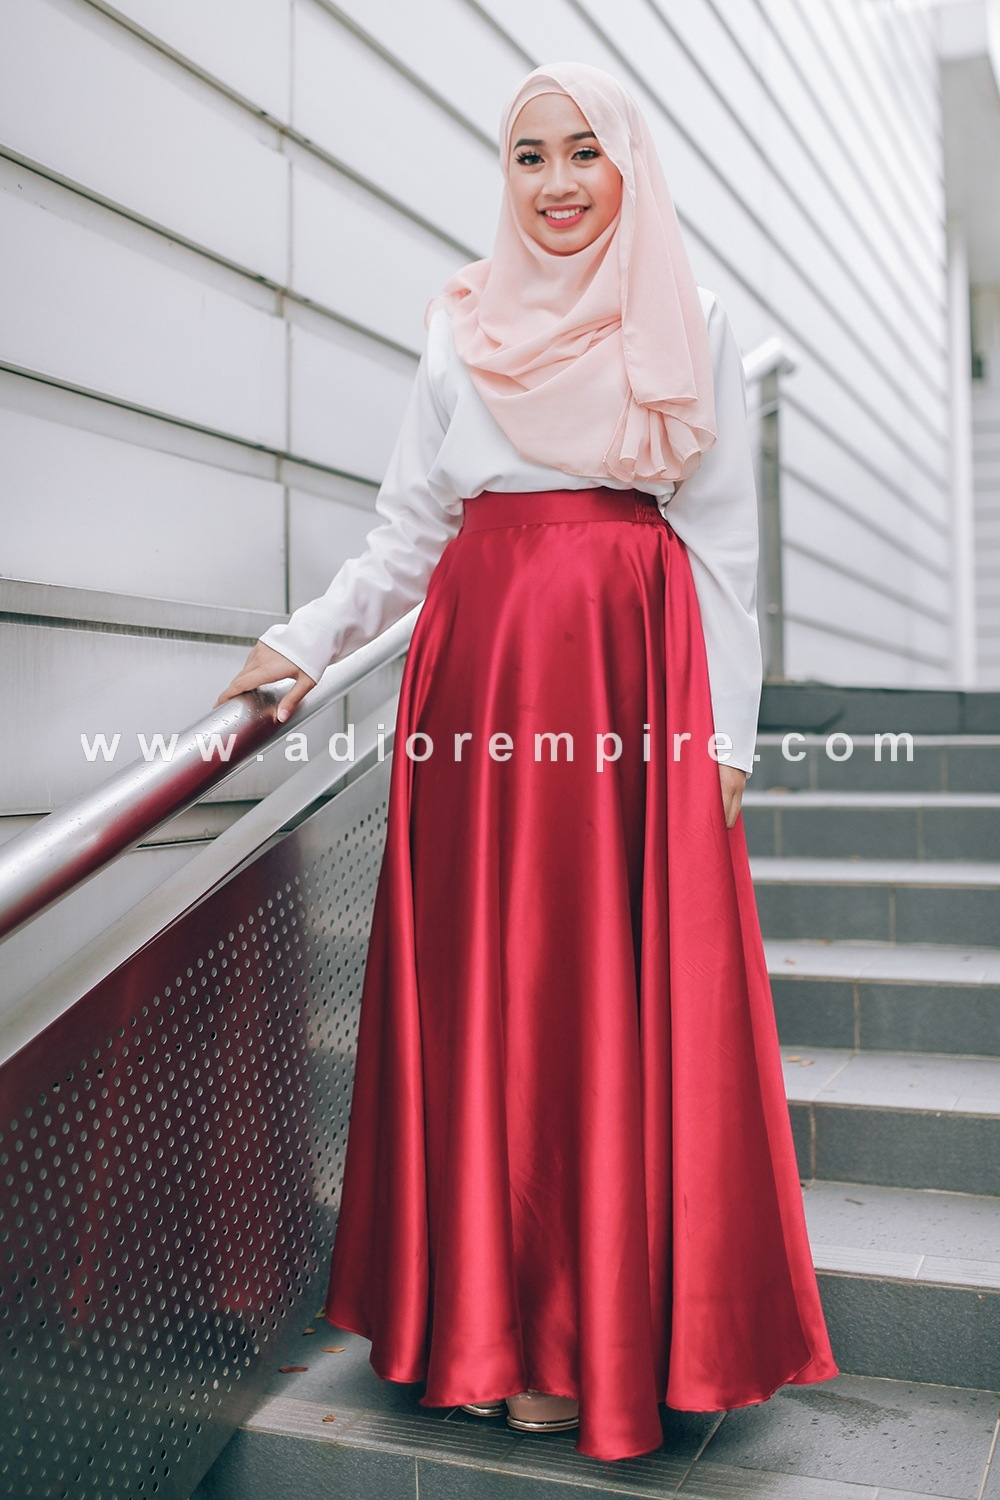 715c46bc0b Home » Adior Basic Satin Flare Skirt - Ruby Red. SALE. Click Image for  Gallery